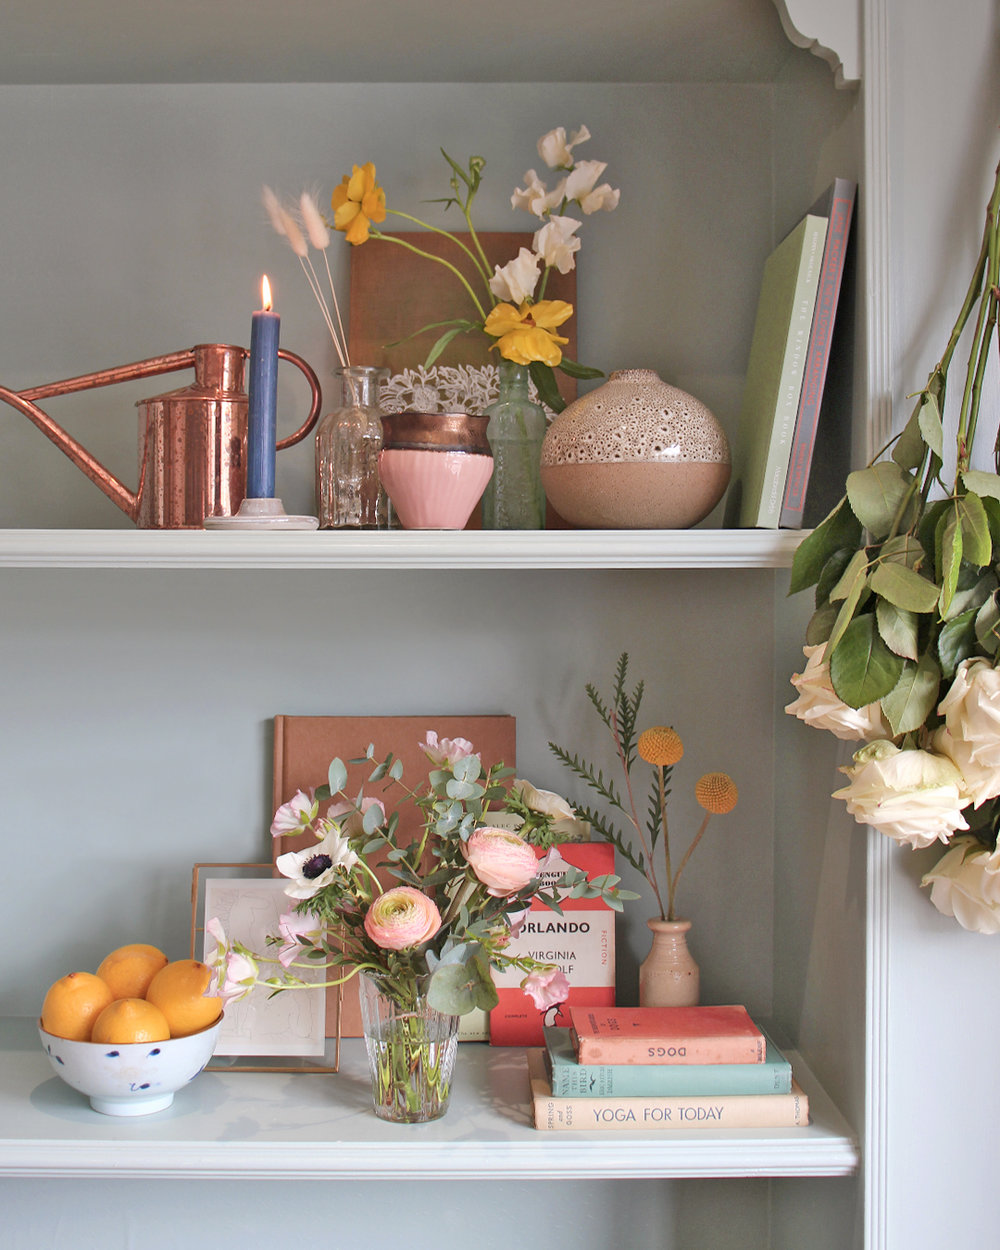 Summer Floral & Interior Styling Workshop - Do you want to learn the art of styling? Maybe you'd like to take beautifully styled images for your website, blog or Instagram? Do you have a camera but have no idea how to use it?If this sounds like you I'm sure you will love this interior and floral styling workshop. You will learn how to create your own hand-tied bouquet, style a beautiful floral display, use visual storytelling in your photography, and will have the opportunity to try your hand at styling a celebration table.We will focus on prop & interior styling as well as how to prepare a table ready for a beautiful gathering. You will have the chance to style beautiful scenes using your own bouquet of flowers and then learn how to take photos of your work.—- Pip, the owner of the beautiful flower shop The Flower Folk, will teach you how to make your own small hand tied bouquet which can be used in the styling lessons.- I will then run through how to create the perfect shelfie, a key part of interior styling. Styling a shelf properly can be incredibly tricky to get right but I will teach you all the rules and theory before moving on to the practical side of things.- You will also learn how to design and style a stunning celebration table to help you host summer gatherings. The tools learnt in this part of the workshop will also come in so handy for Christmas and Easter etc.- Finally you will have the chance to learn how to use your phone or DSLR camera properly. I'll share my photo tips so you'll leave with the knowledge and confidence to shoot your own snaps.—If you have an interest in styling your home or products this workshop will help guide you through all the basics so you leave feeling confident and inspired.